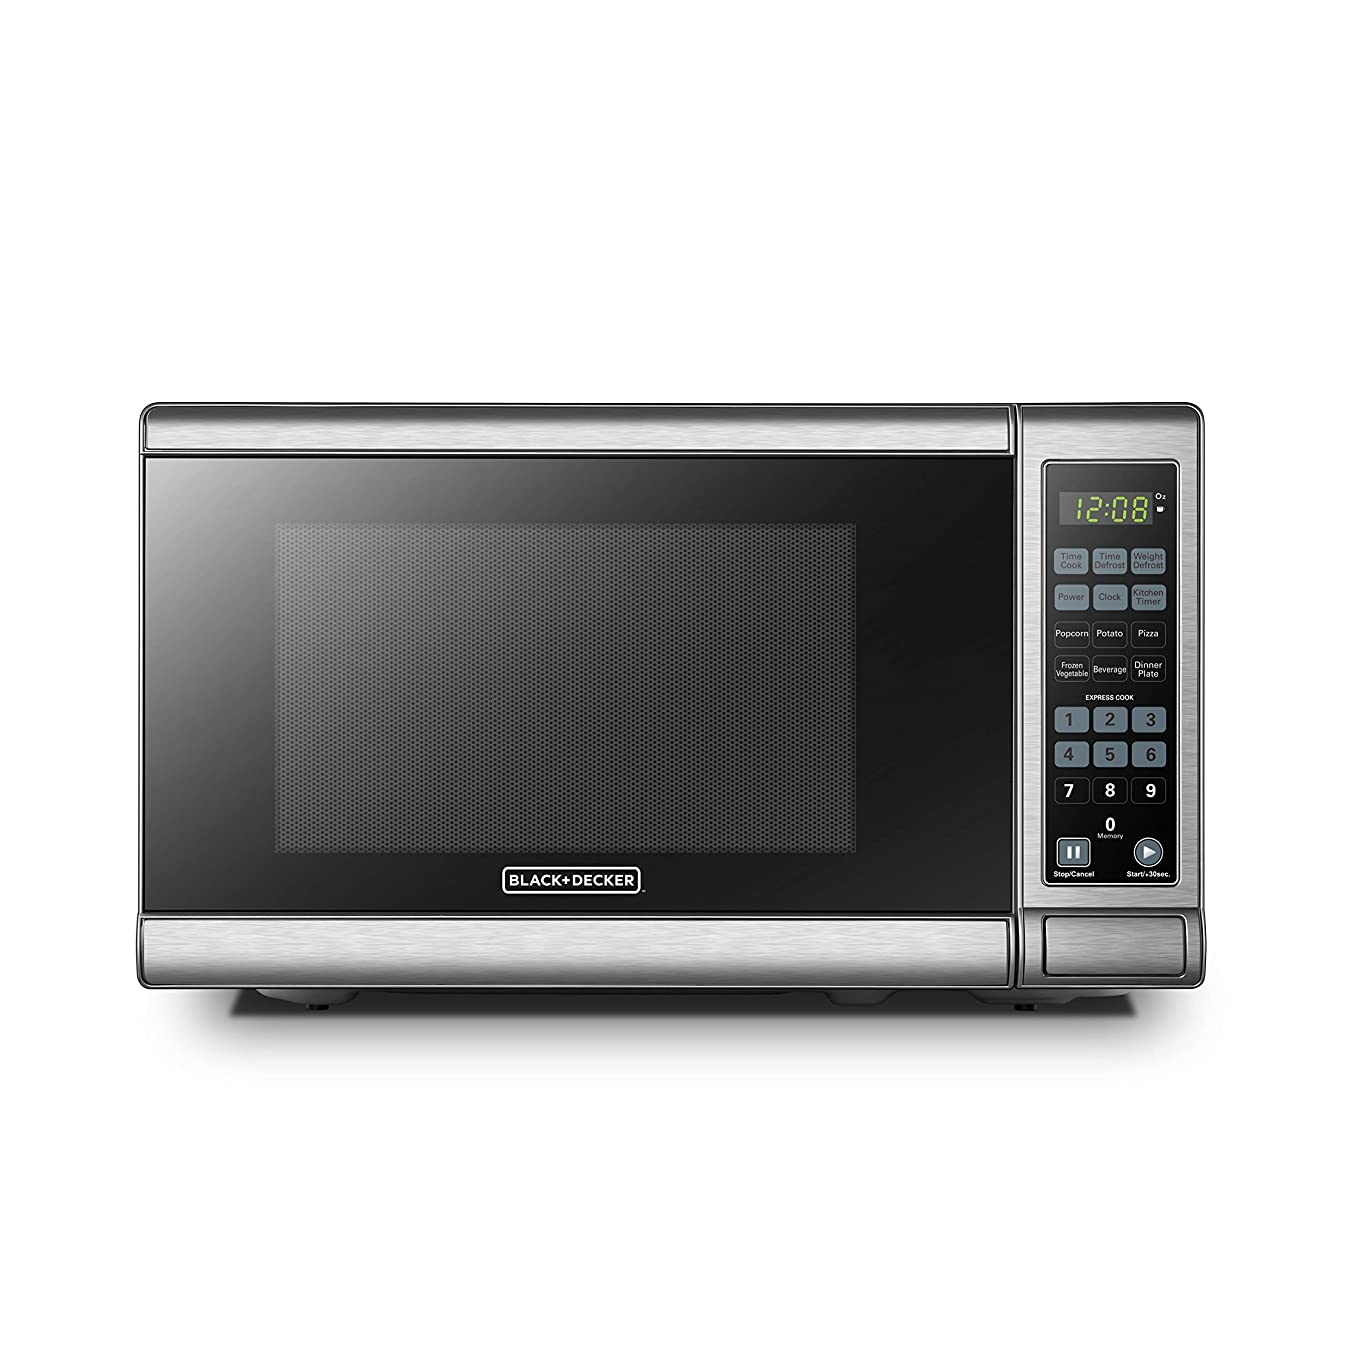 BLACK+DECKER EM720CB7 Digital Microwave Oven with Turntable Push-Button Door,Child Safety Lock,700W, Stainless Steel 0.7 Cu.Ft